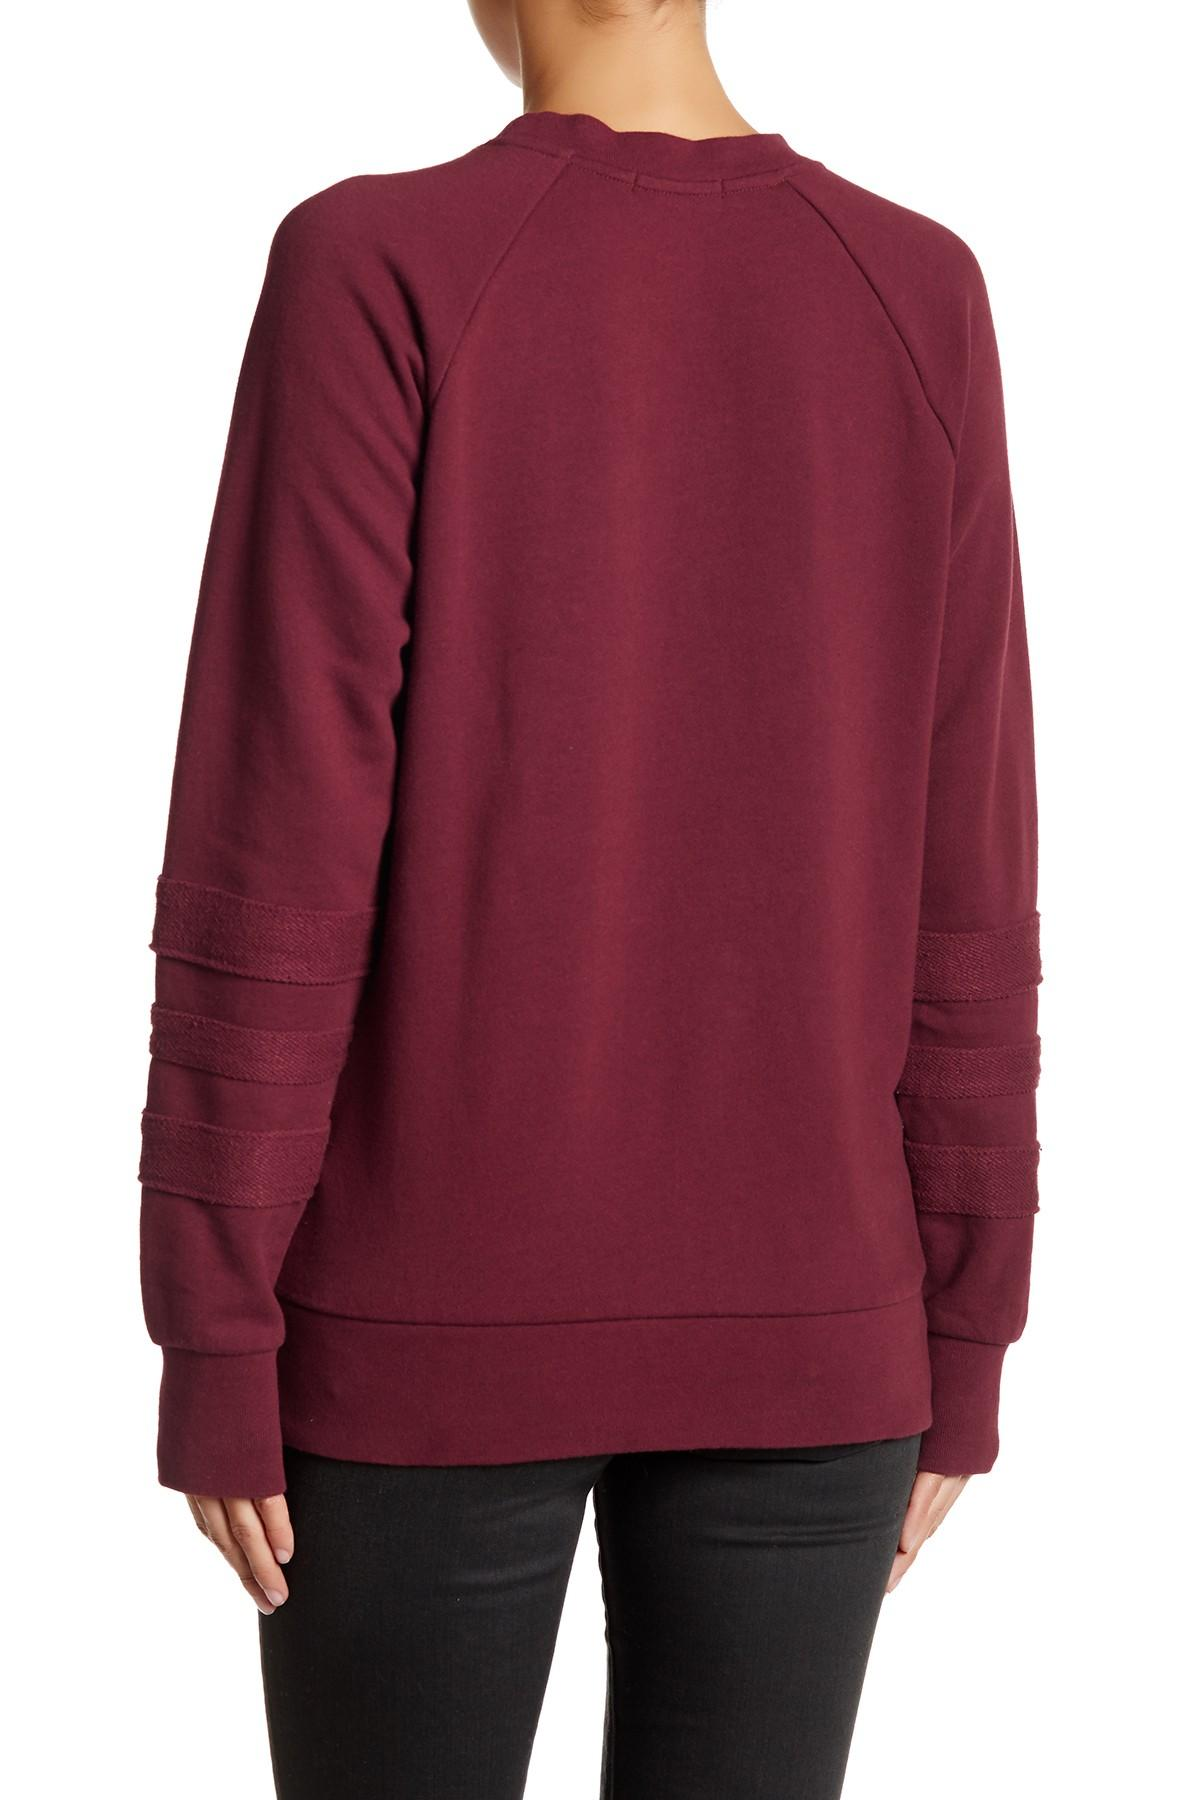 Lyst - Obey Shadow Stripe Crew Sweater in Red